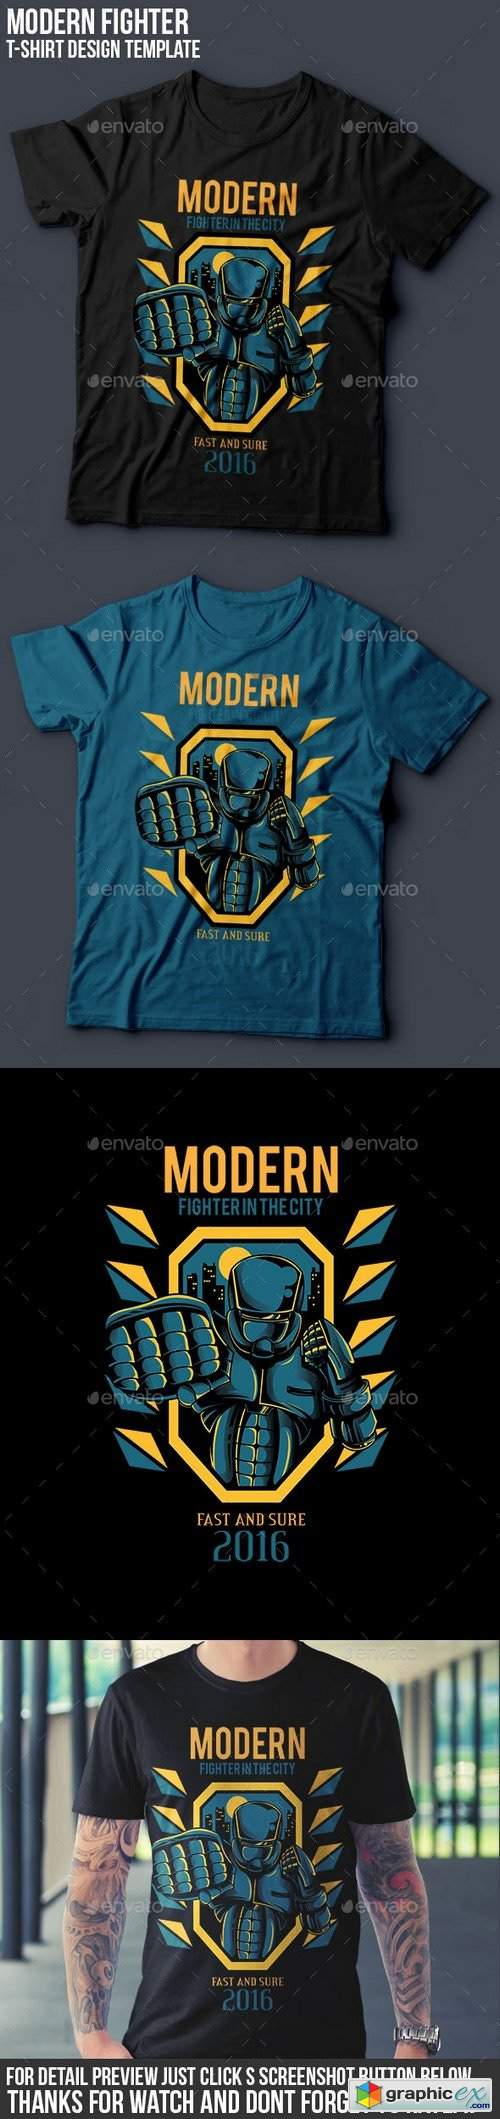 Modern Fighter T-Shirt Design